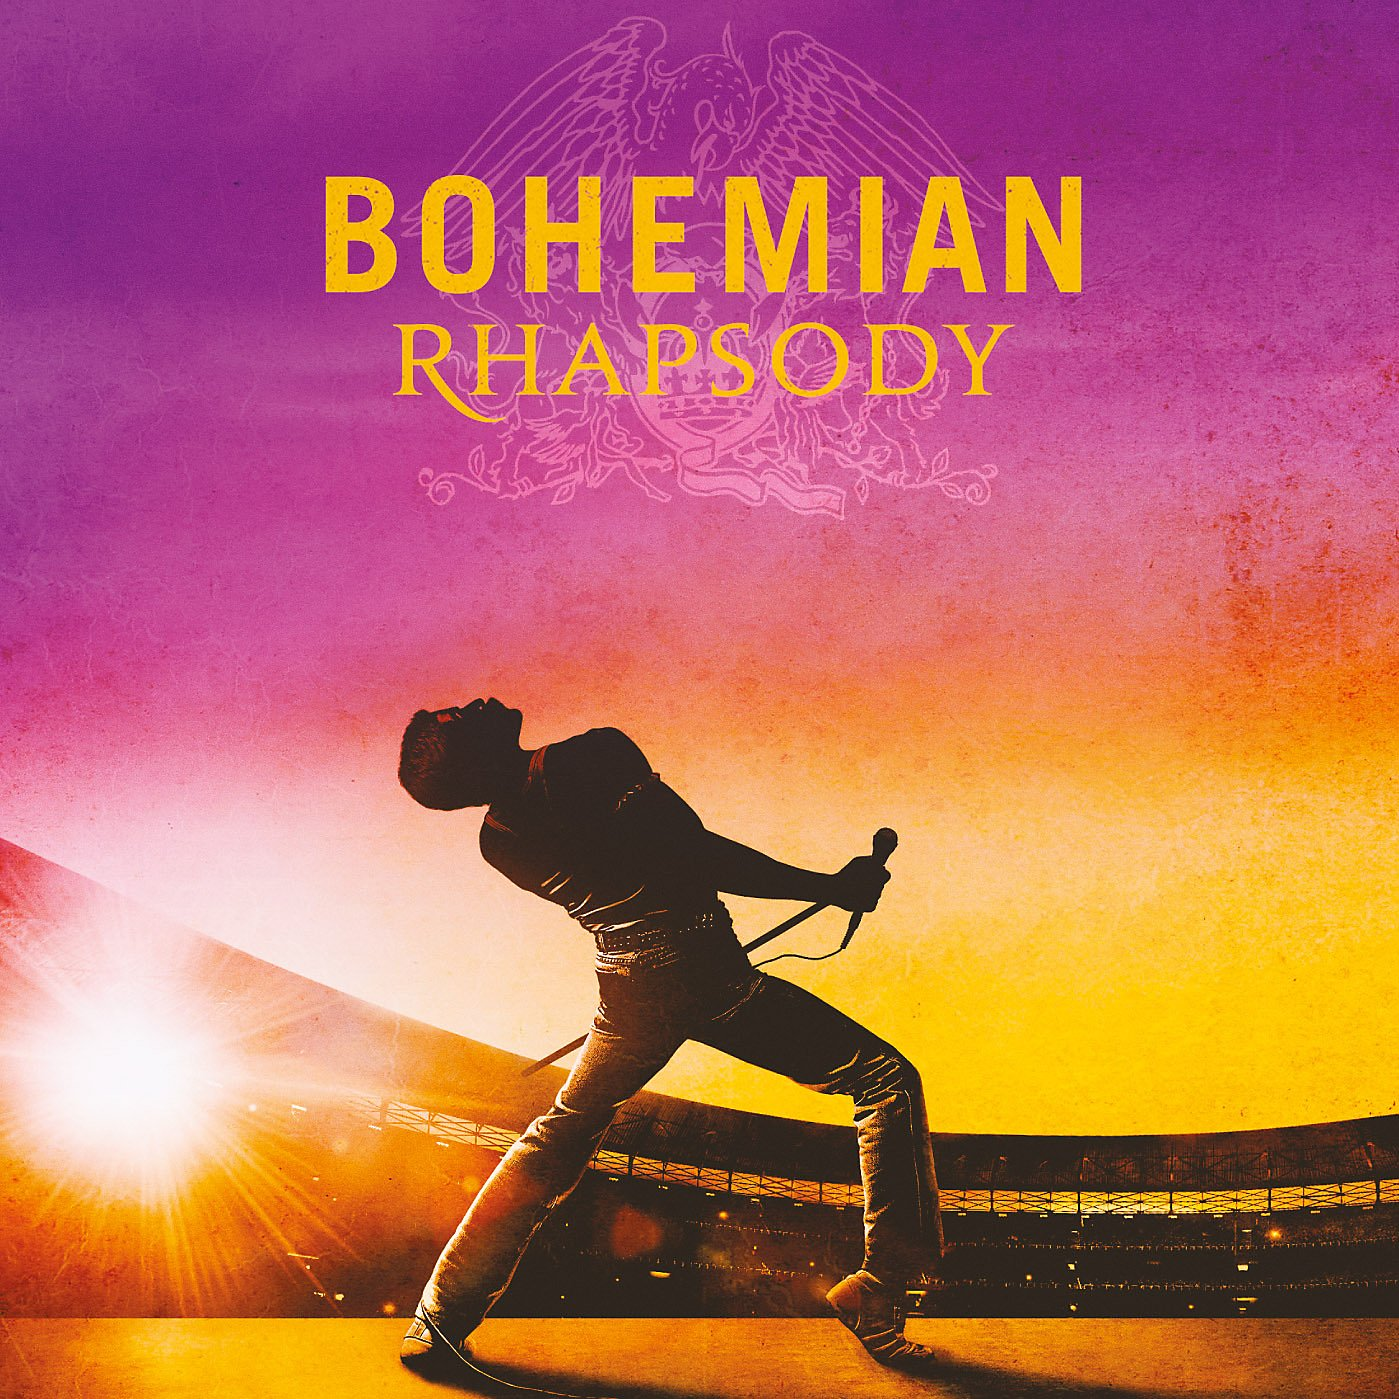 Bohemian Rhapsody Original Soundtrack CD von Queen | Weltbild.de